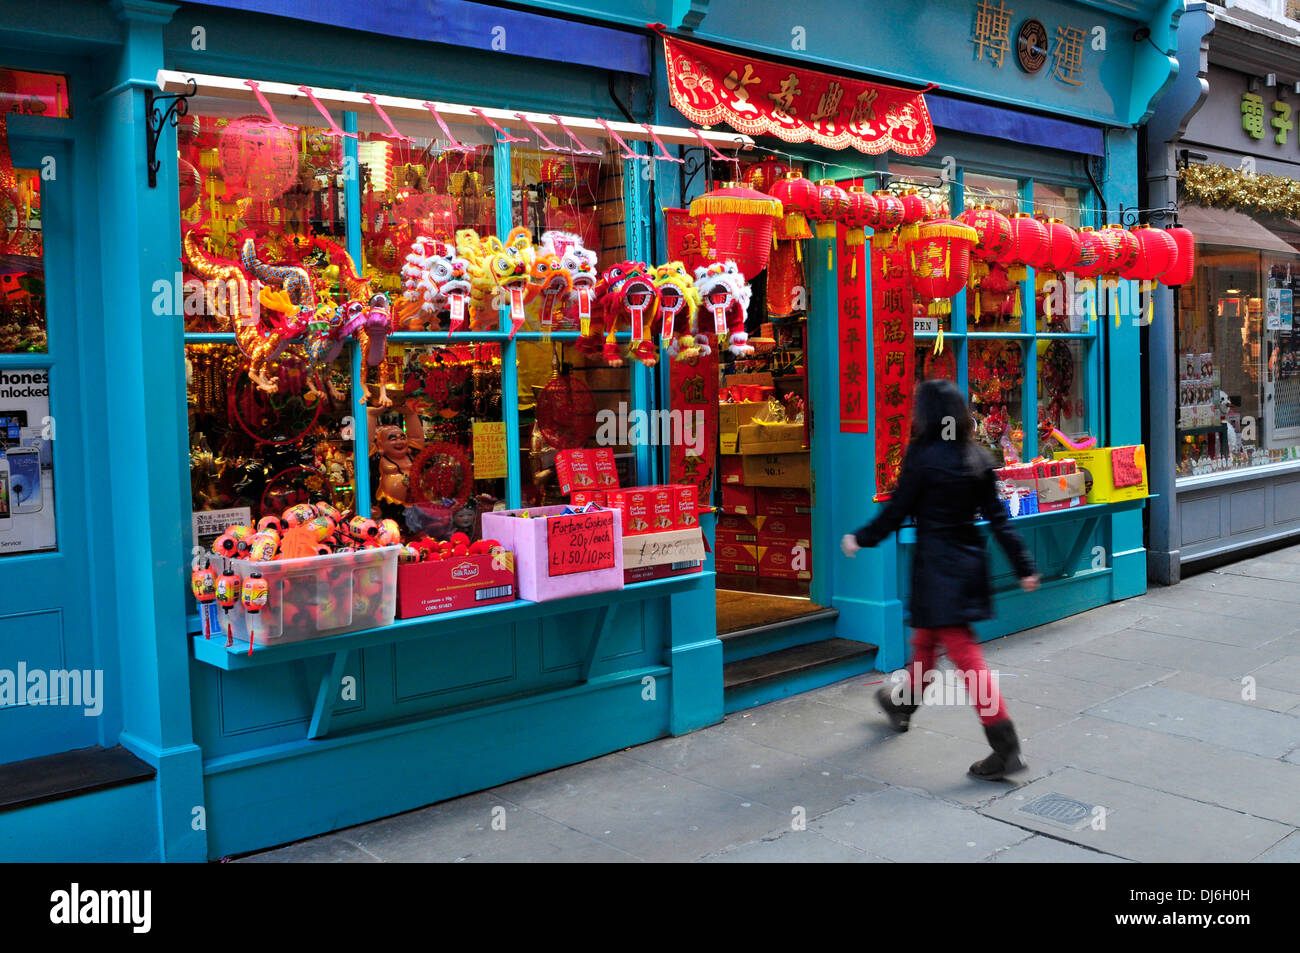 A general view of a Chinese shop decorated for the celebration of the year of the snake. China Town, London - Stock Image